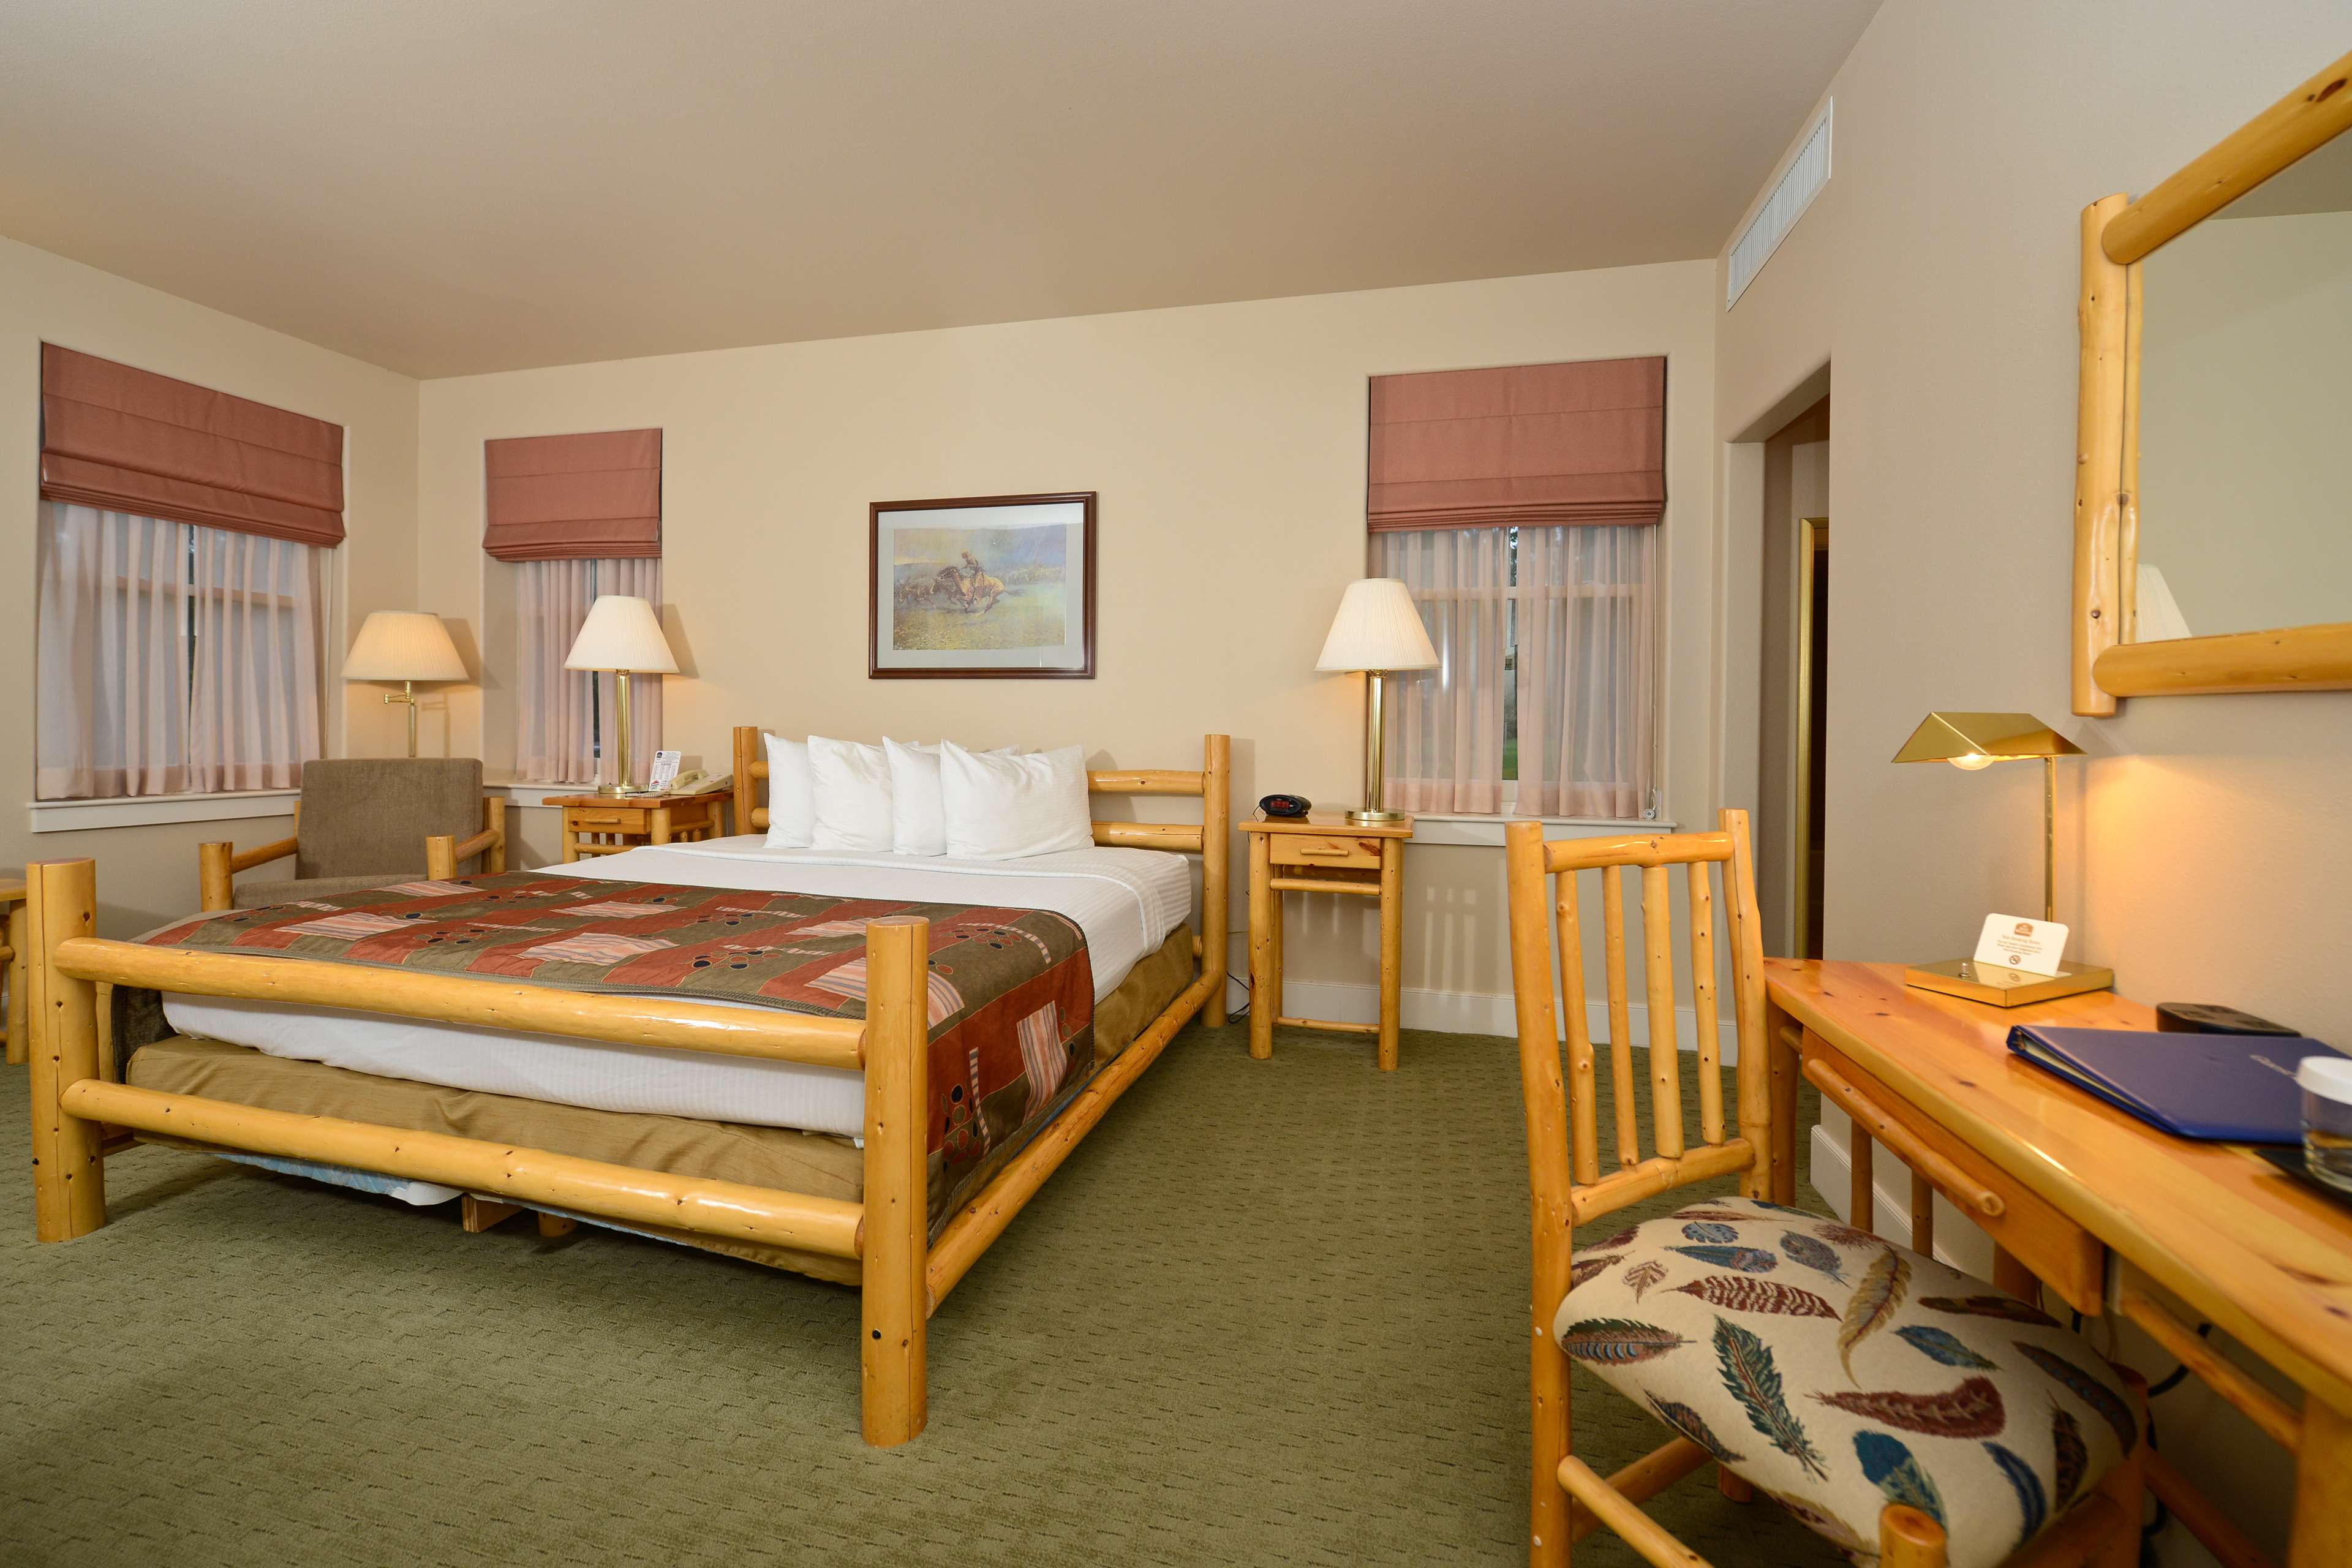 Best Western Plus Plaza Hotel image 33